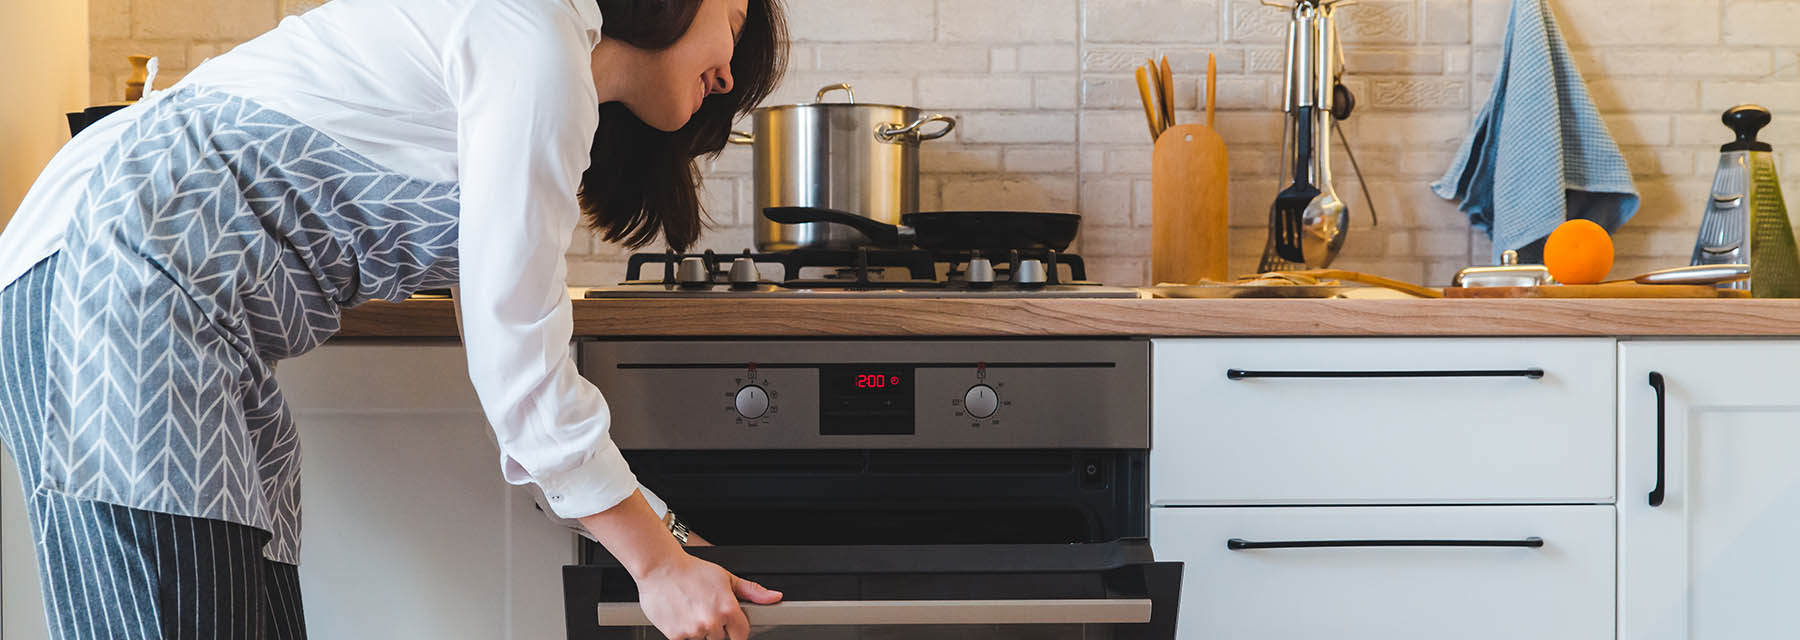 woman opening oven door while cooking on natural gas cooktop